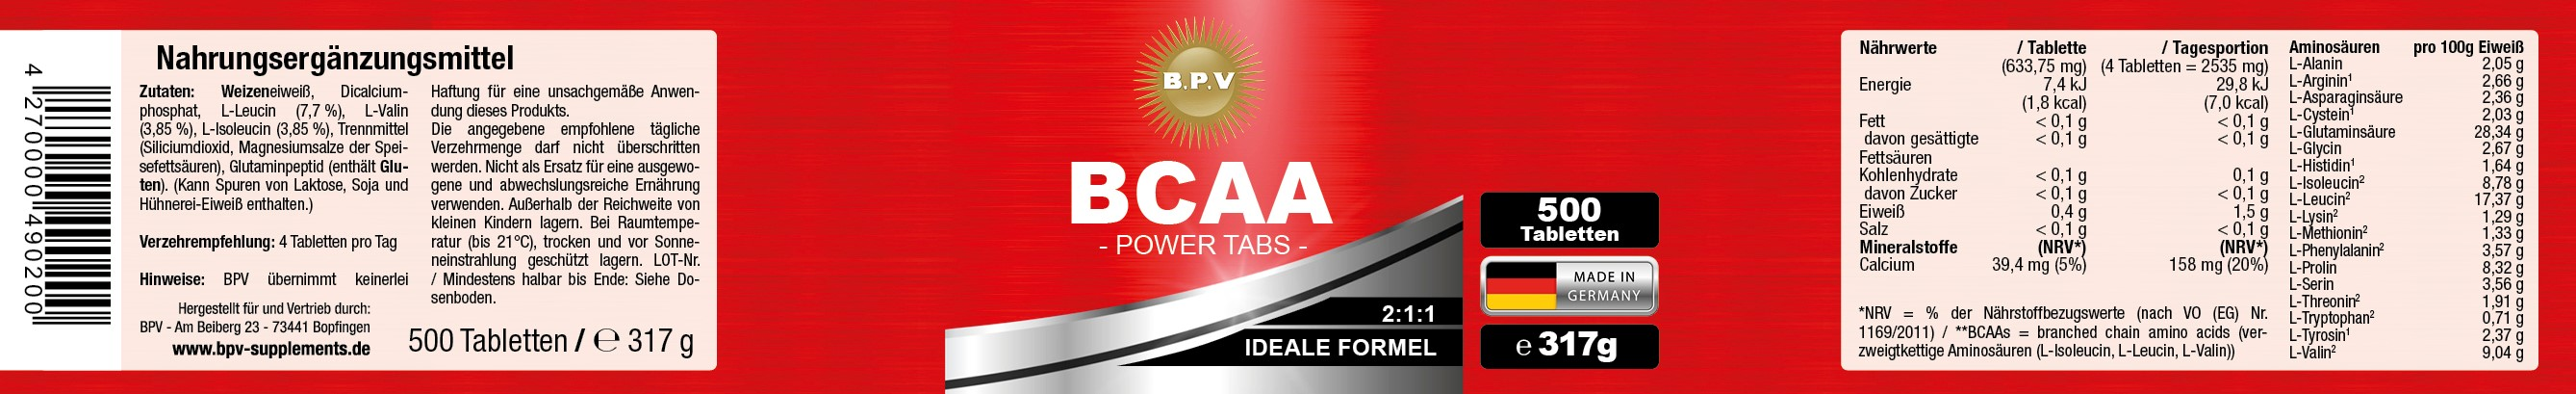 ANSICHT_BCAA-Tabletten_750ml-Dose_500Stuck